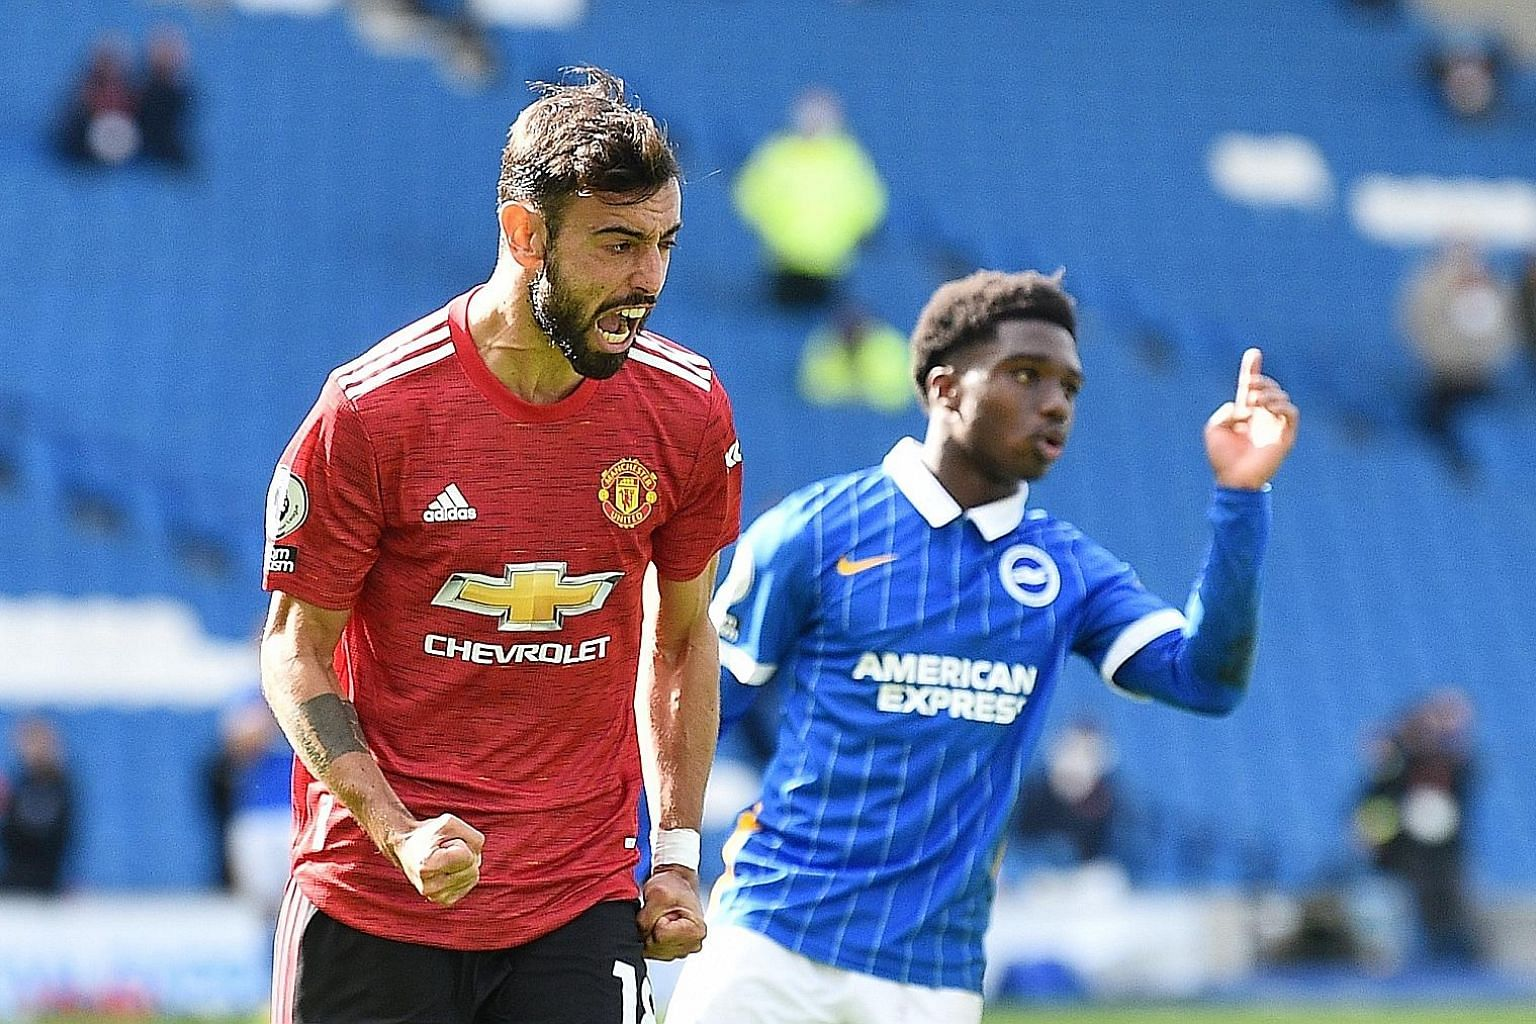 Bruno Fernandes celebrating after scoring Manchester United's third goal at Brighton yesterday. It was the 18th straight penalty that the Portuguese has converted. PHOTO: REUTERS